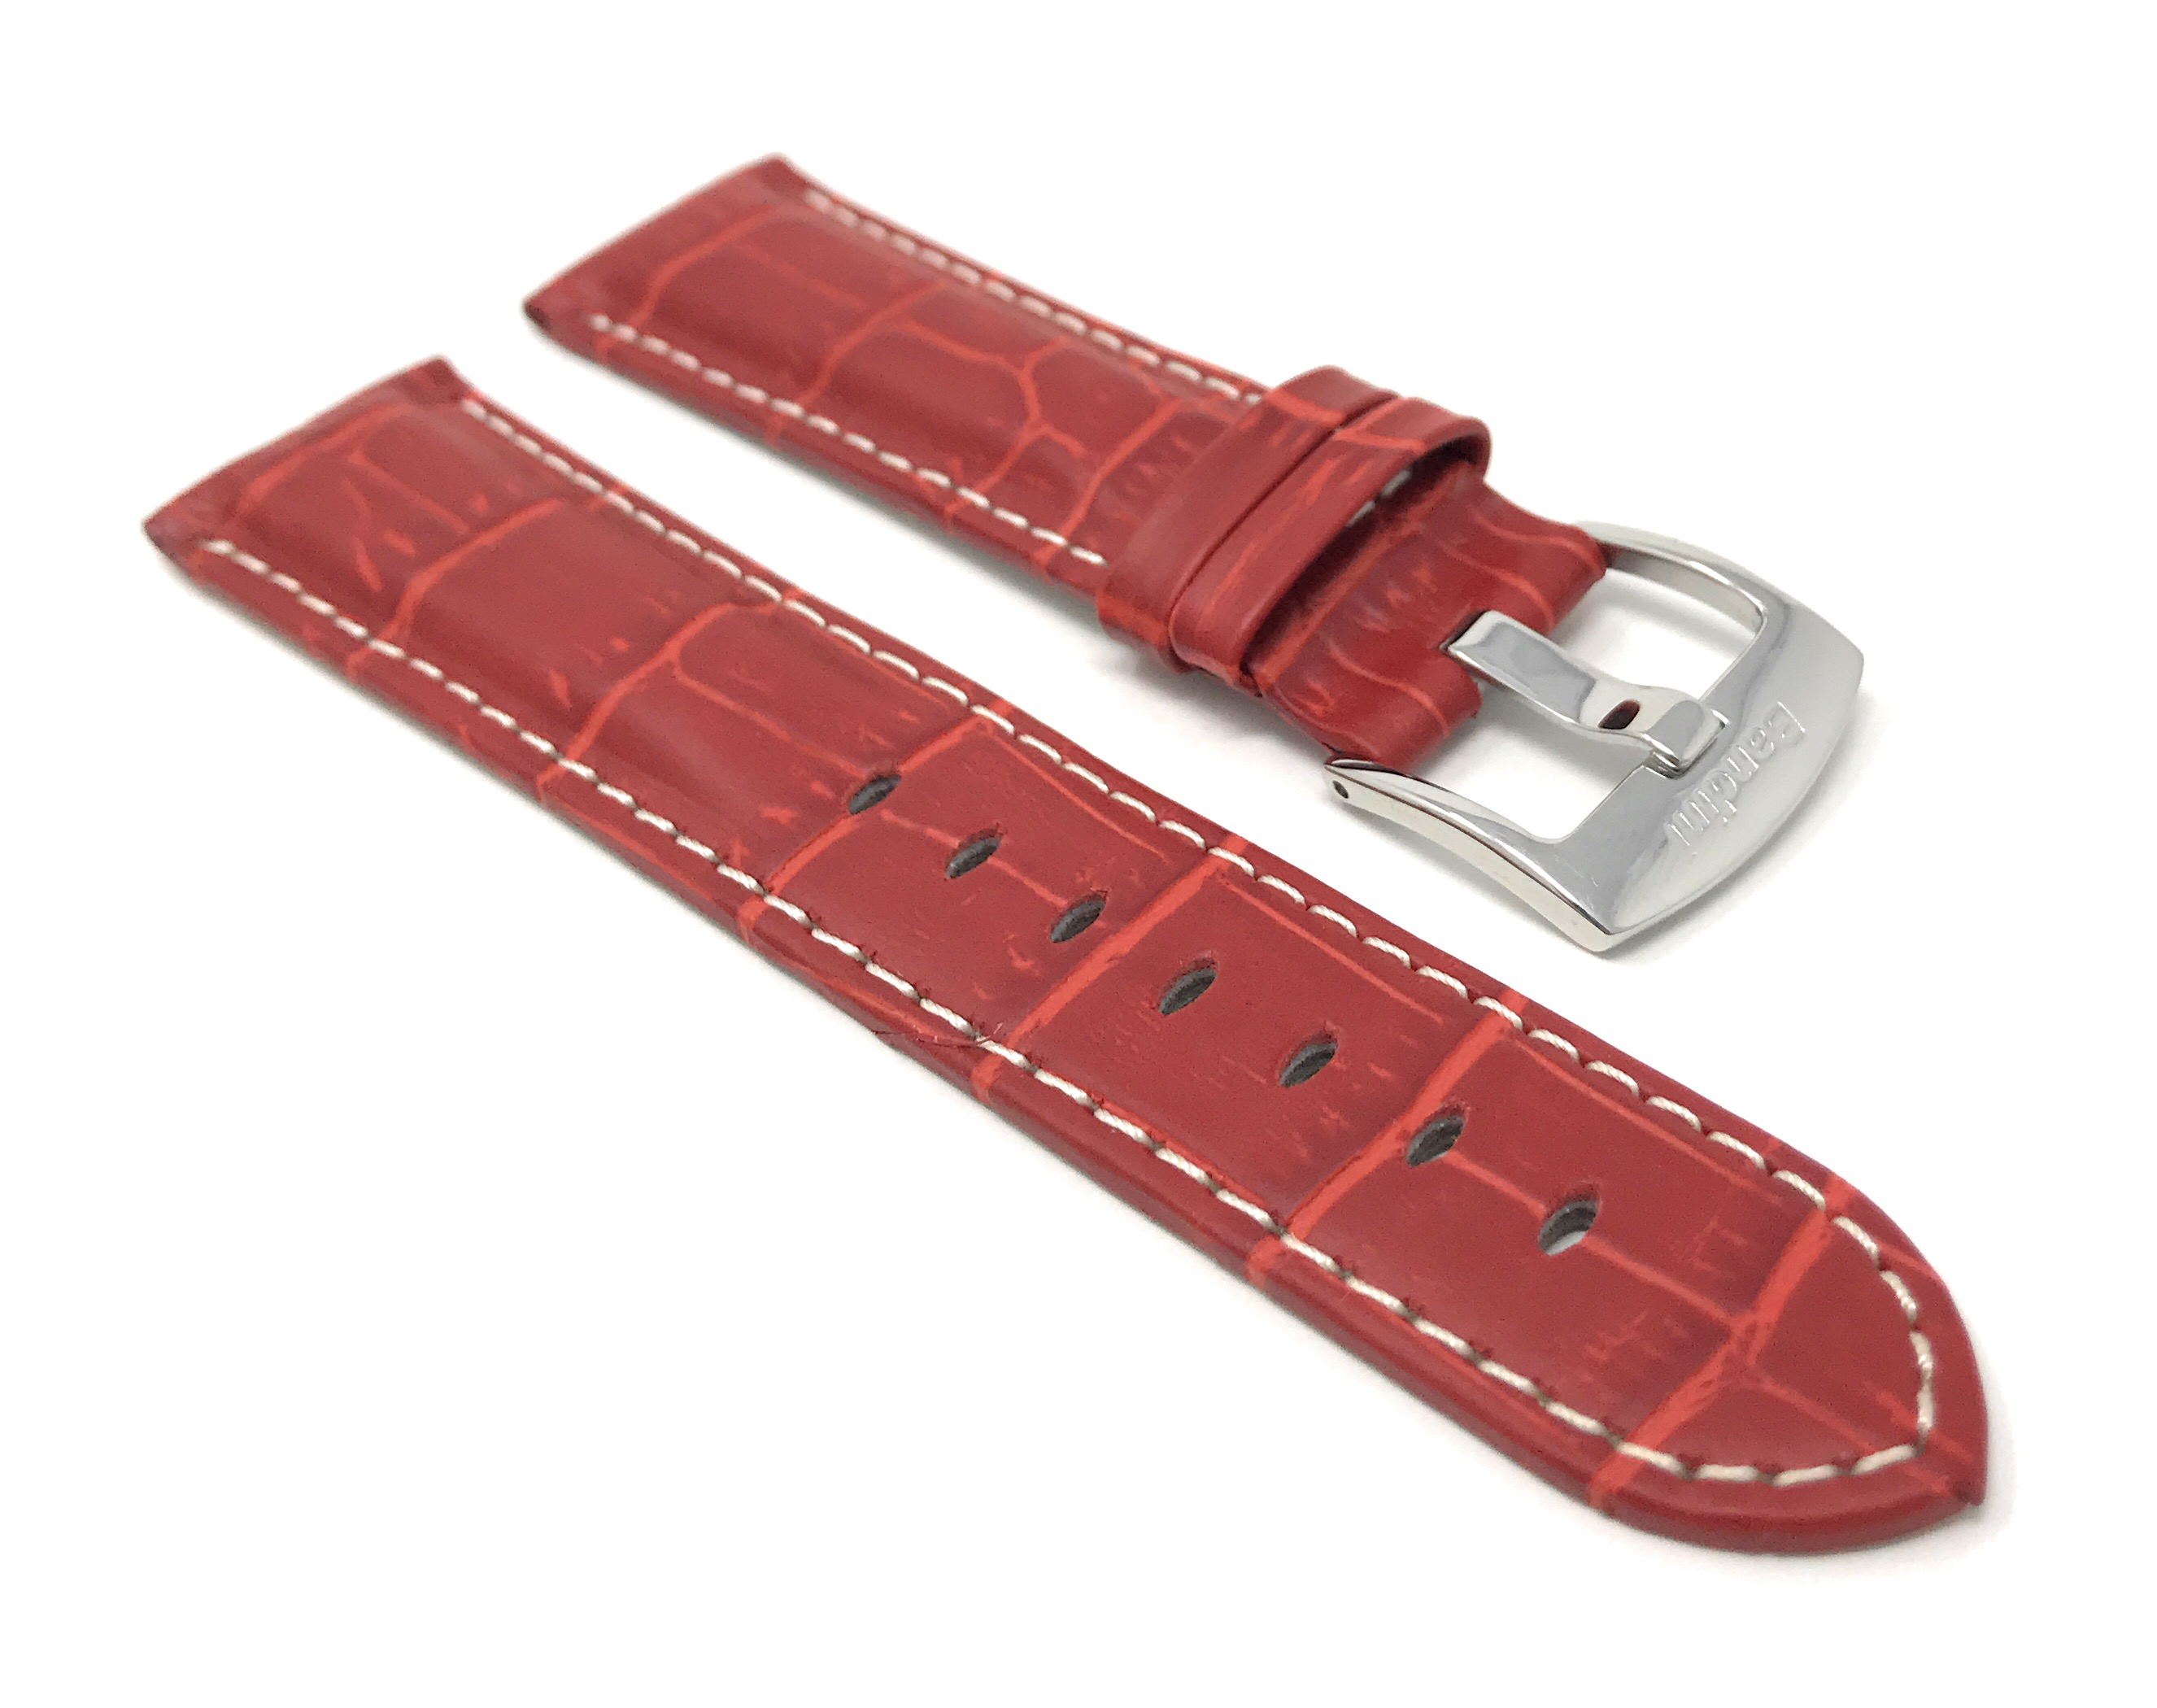 Bandini-Mens-Watch-Band-Alligator-Style-Leather-Strap-18mm-26mm-15-Colors thumbnail 75